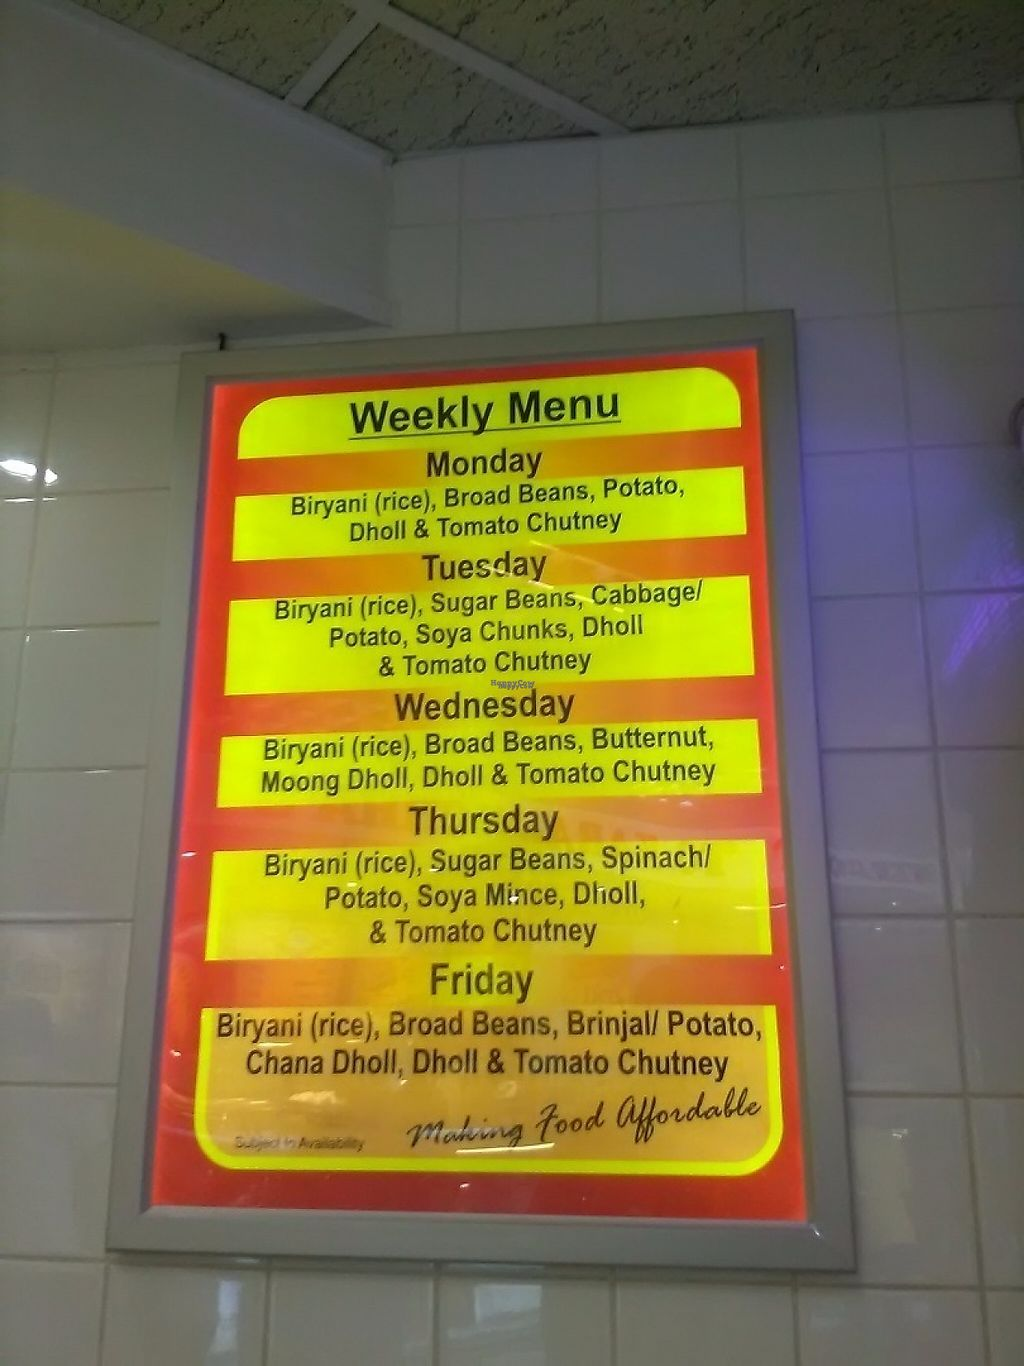 """Photo of Kara Nichha's - Midrand  by <a href=""""/members/profile/Wolfmoon"""">Wolfmoon</a> <br/>Weekly menu <br/> April 2, 2017  - <a href='/contact/abuse/image/52148/244013'>Report</a>"""